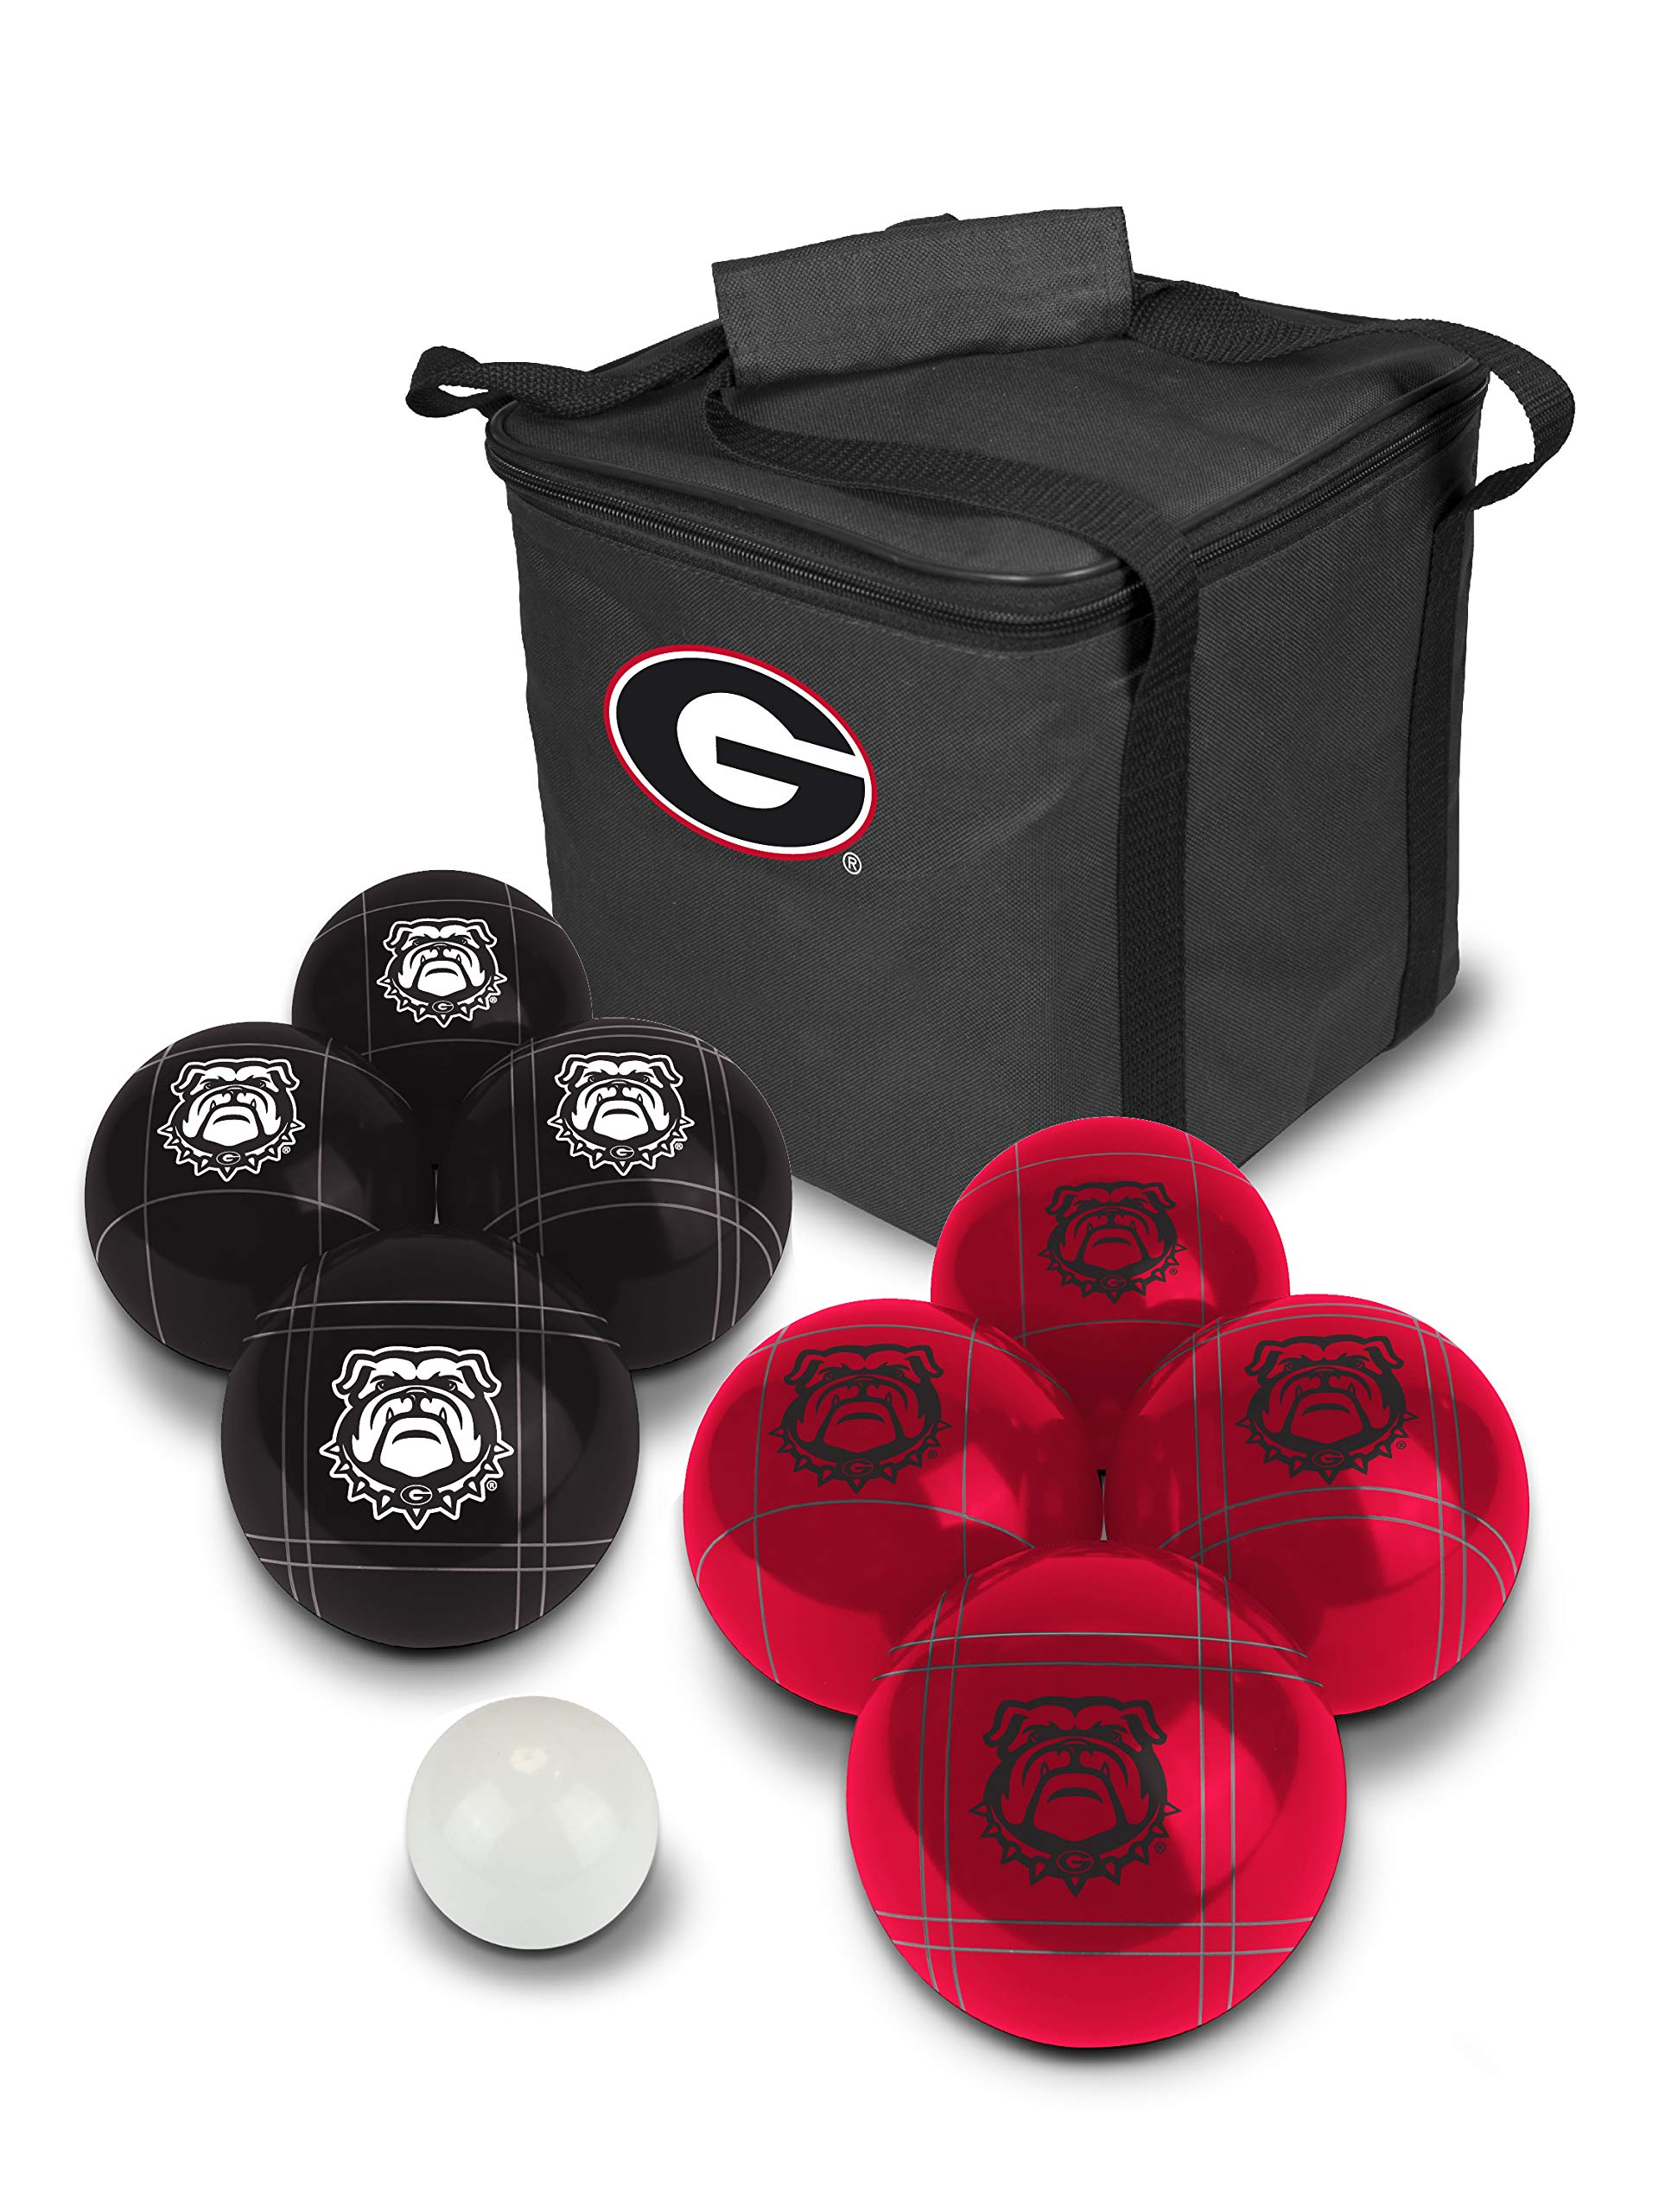 PROLINE NCAA College Georgia Bulldogs Bocce Ball Set by PROLINE